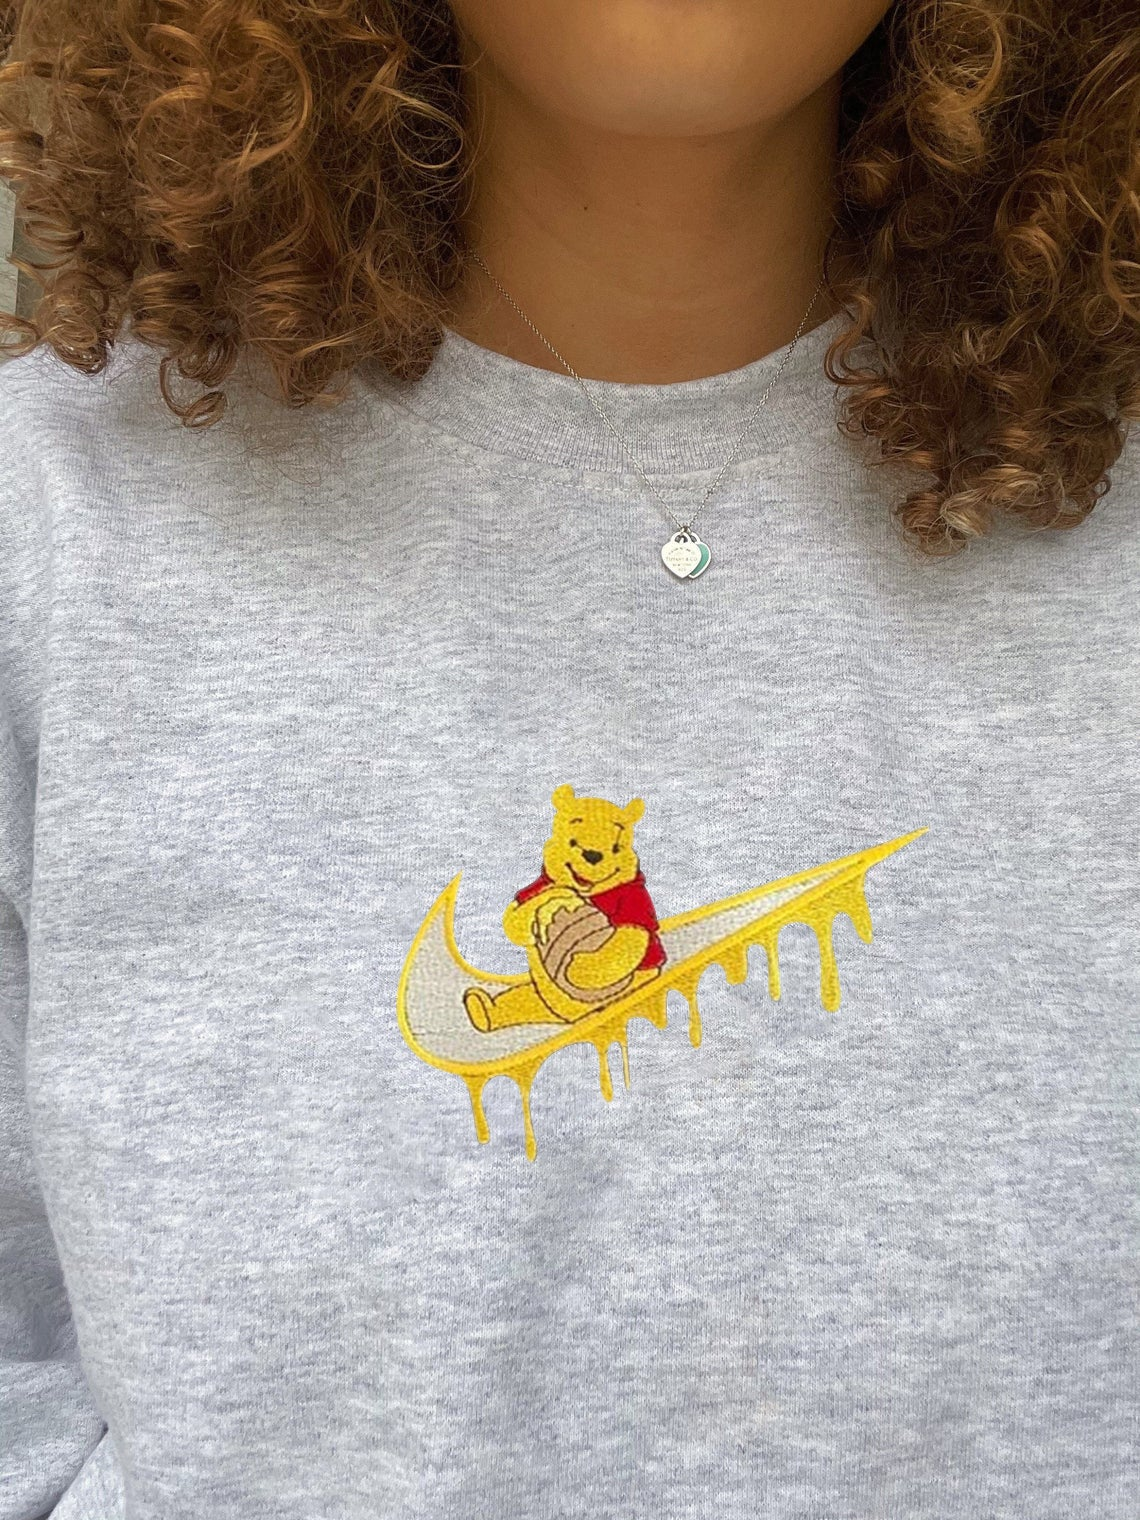 Winnie The Pooh Embroidered Swoosh Sweatshirt/t-shirt/hoodie Embroidery